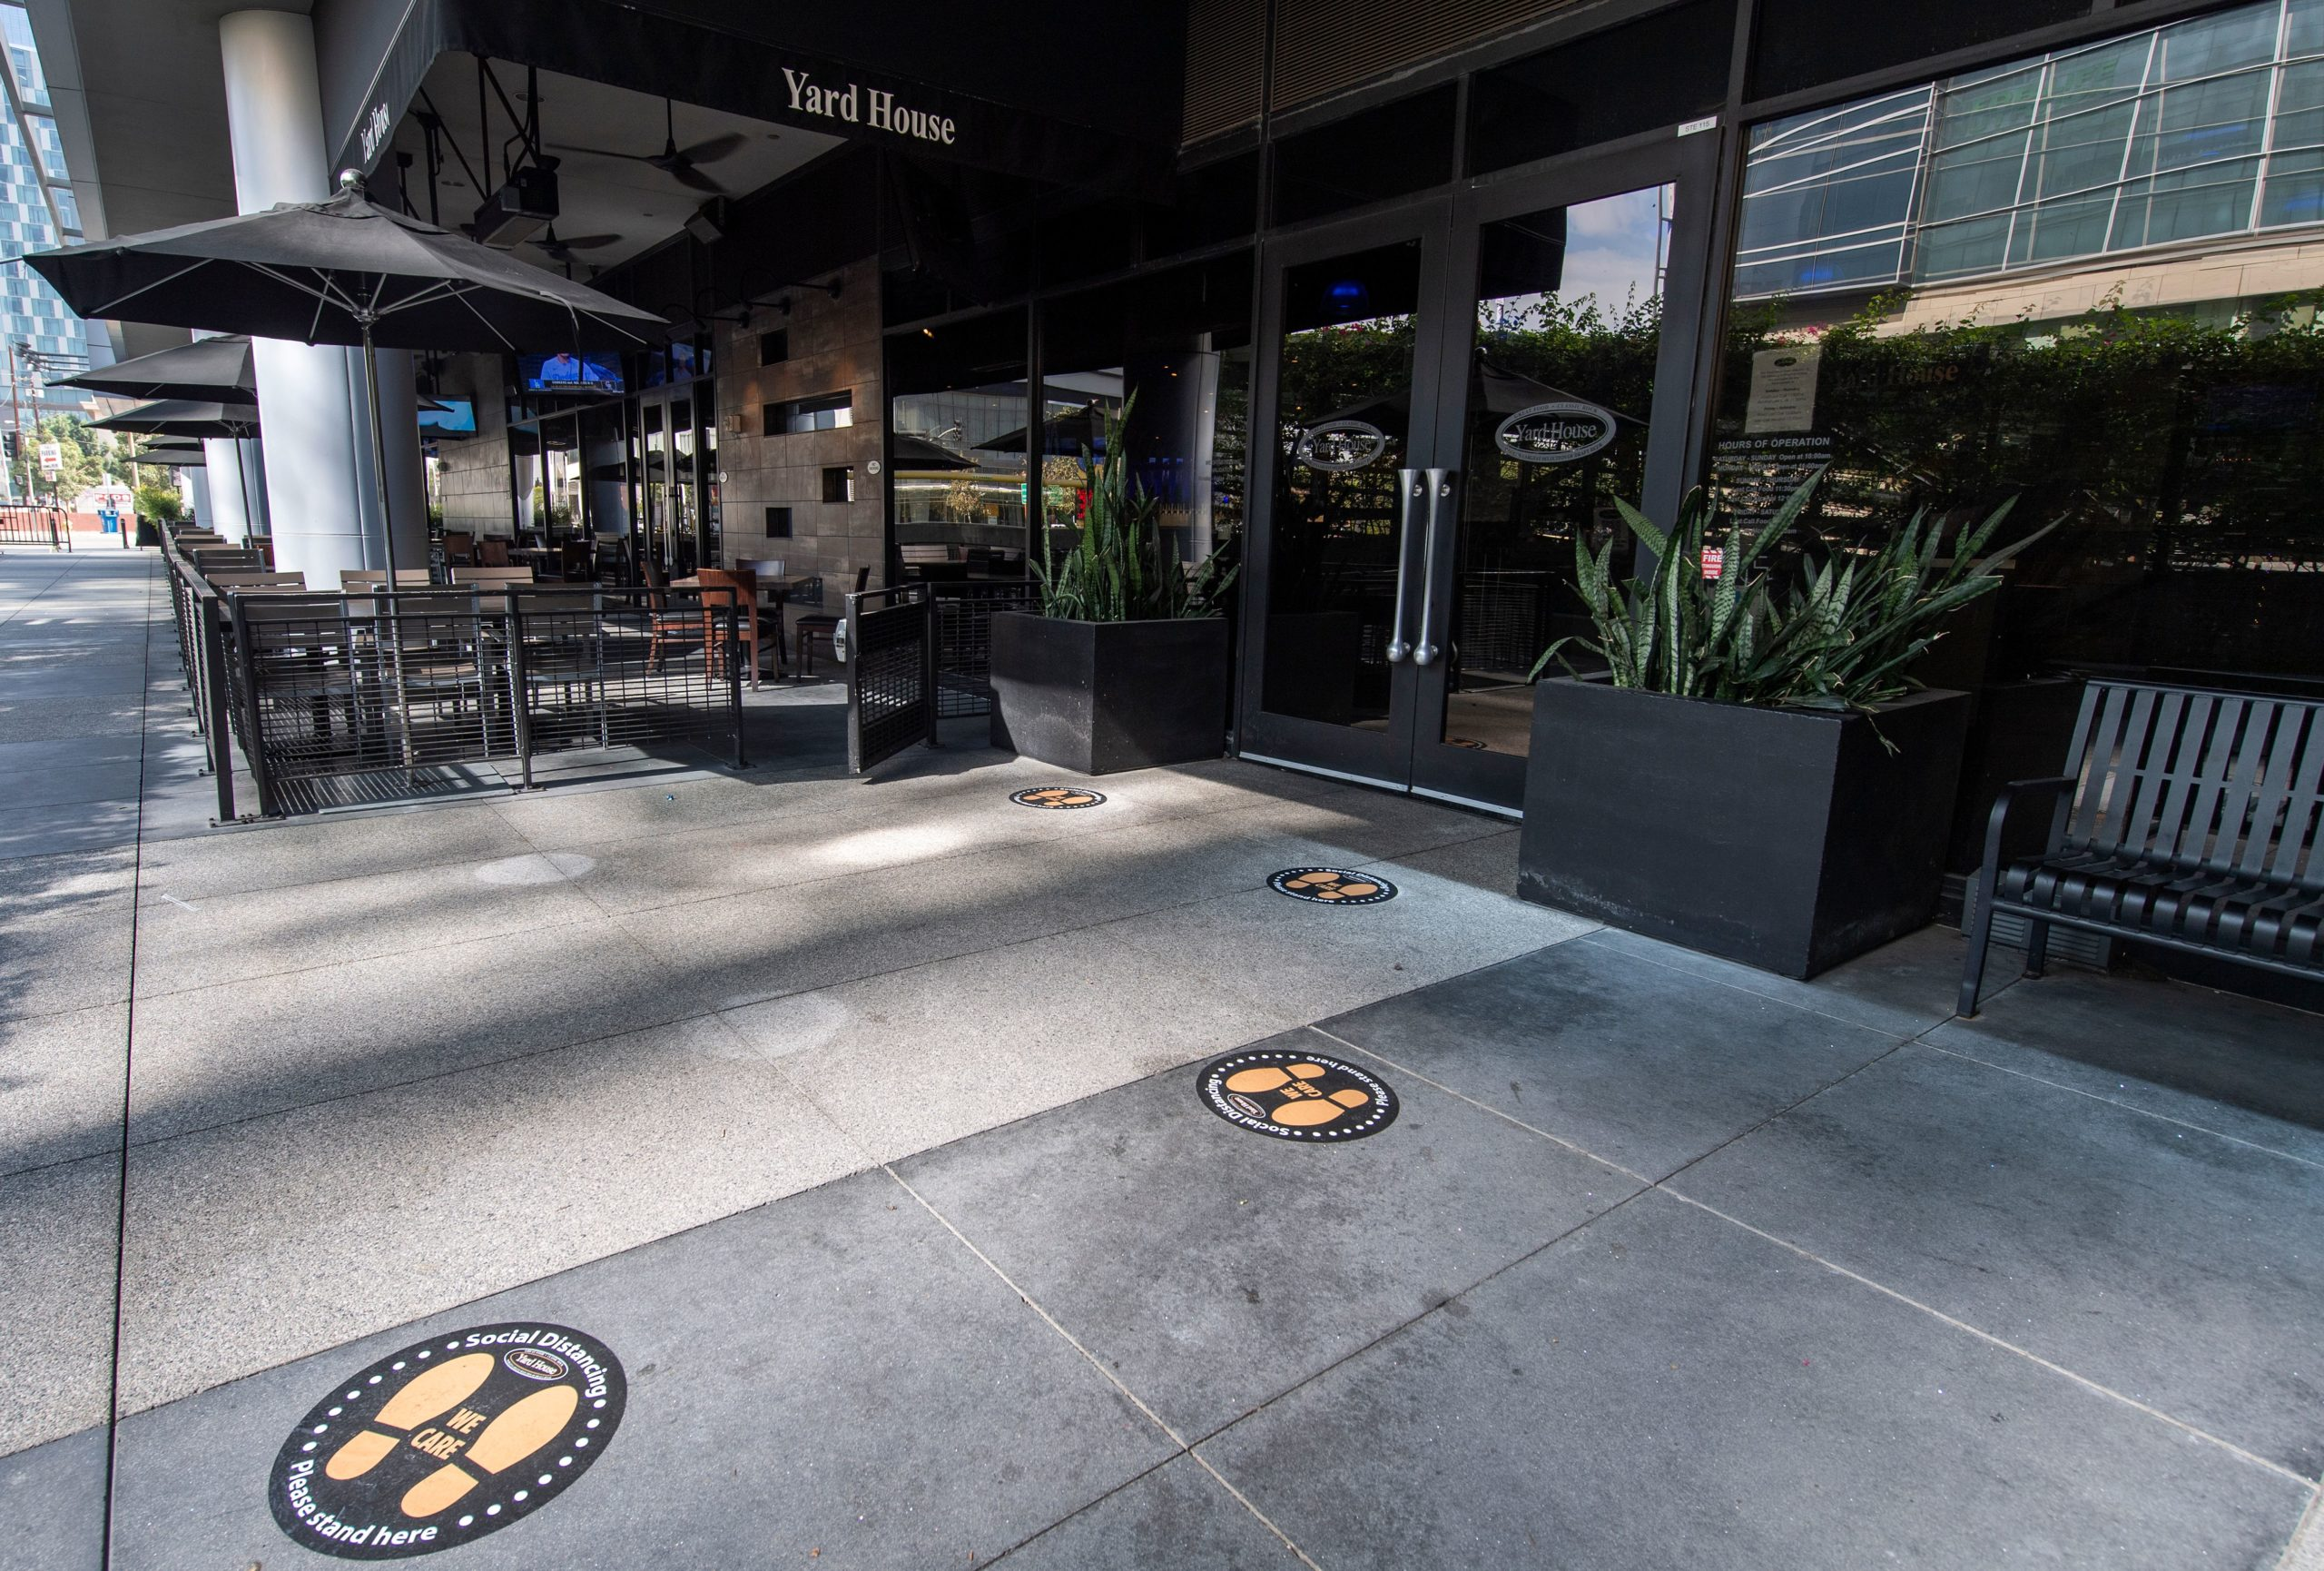 Footprints are marked for safety distancing in front of a restaurant during the coronavirus pandemic, September 18, 2020, in Los Angeles California. (Photo by VALERIE MACON / AFP) (Photo by VALERIE MACON/AFP via Getty Images)